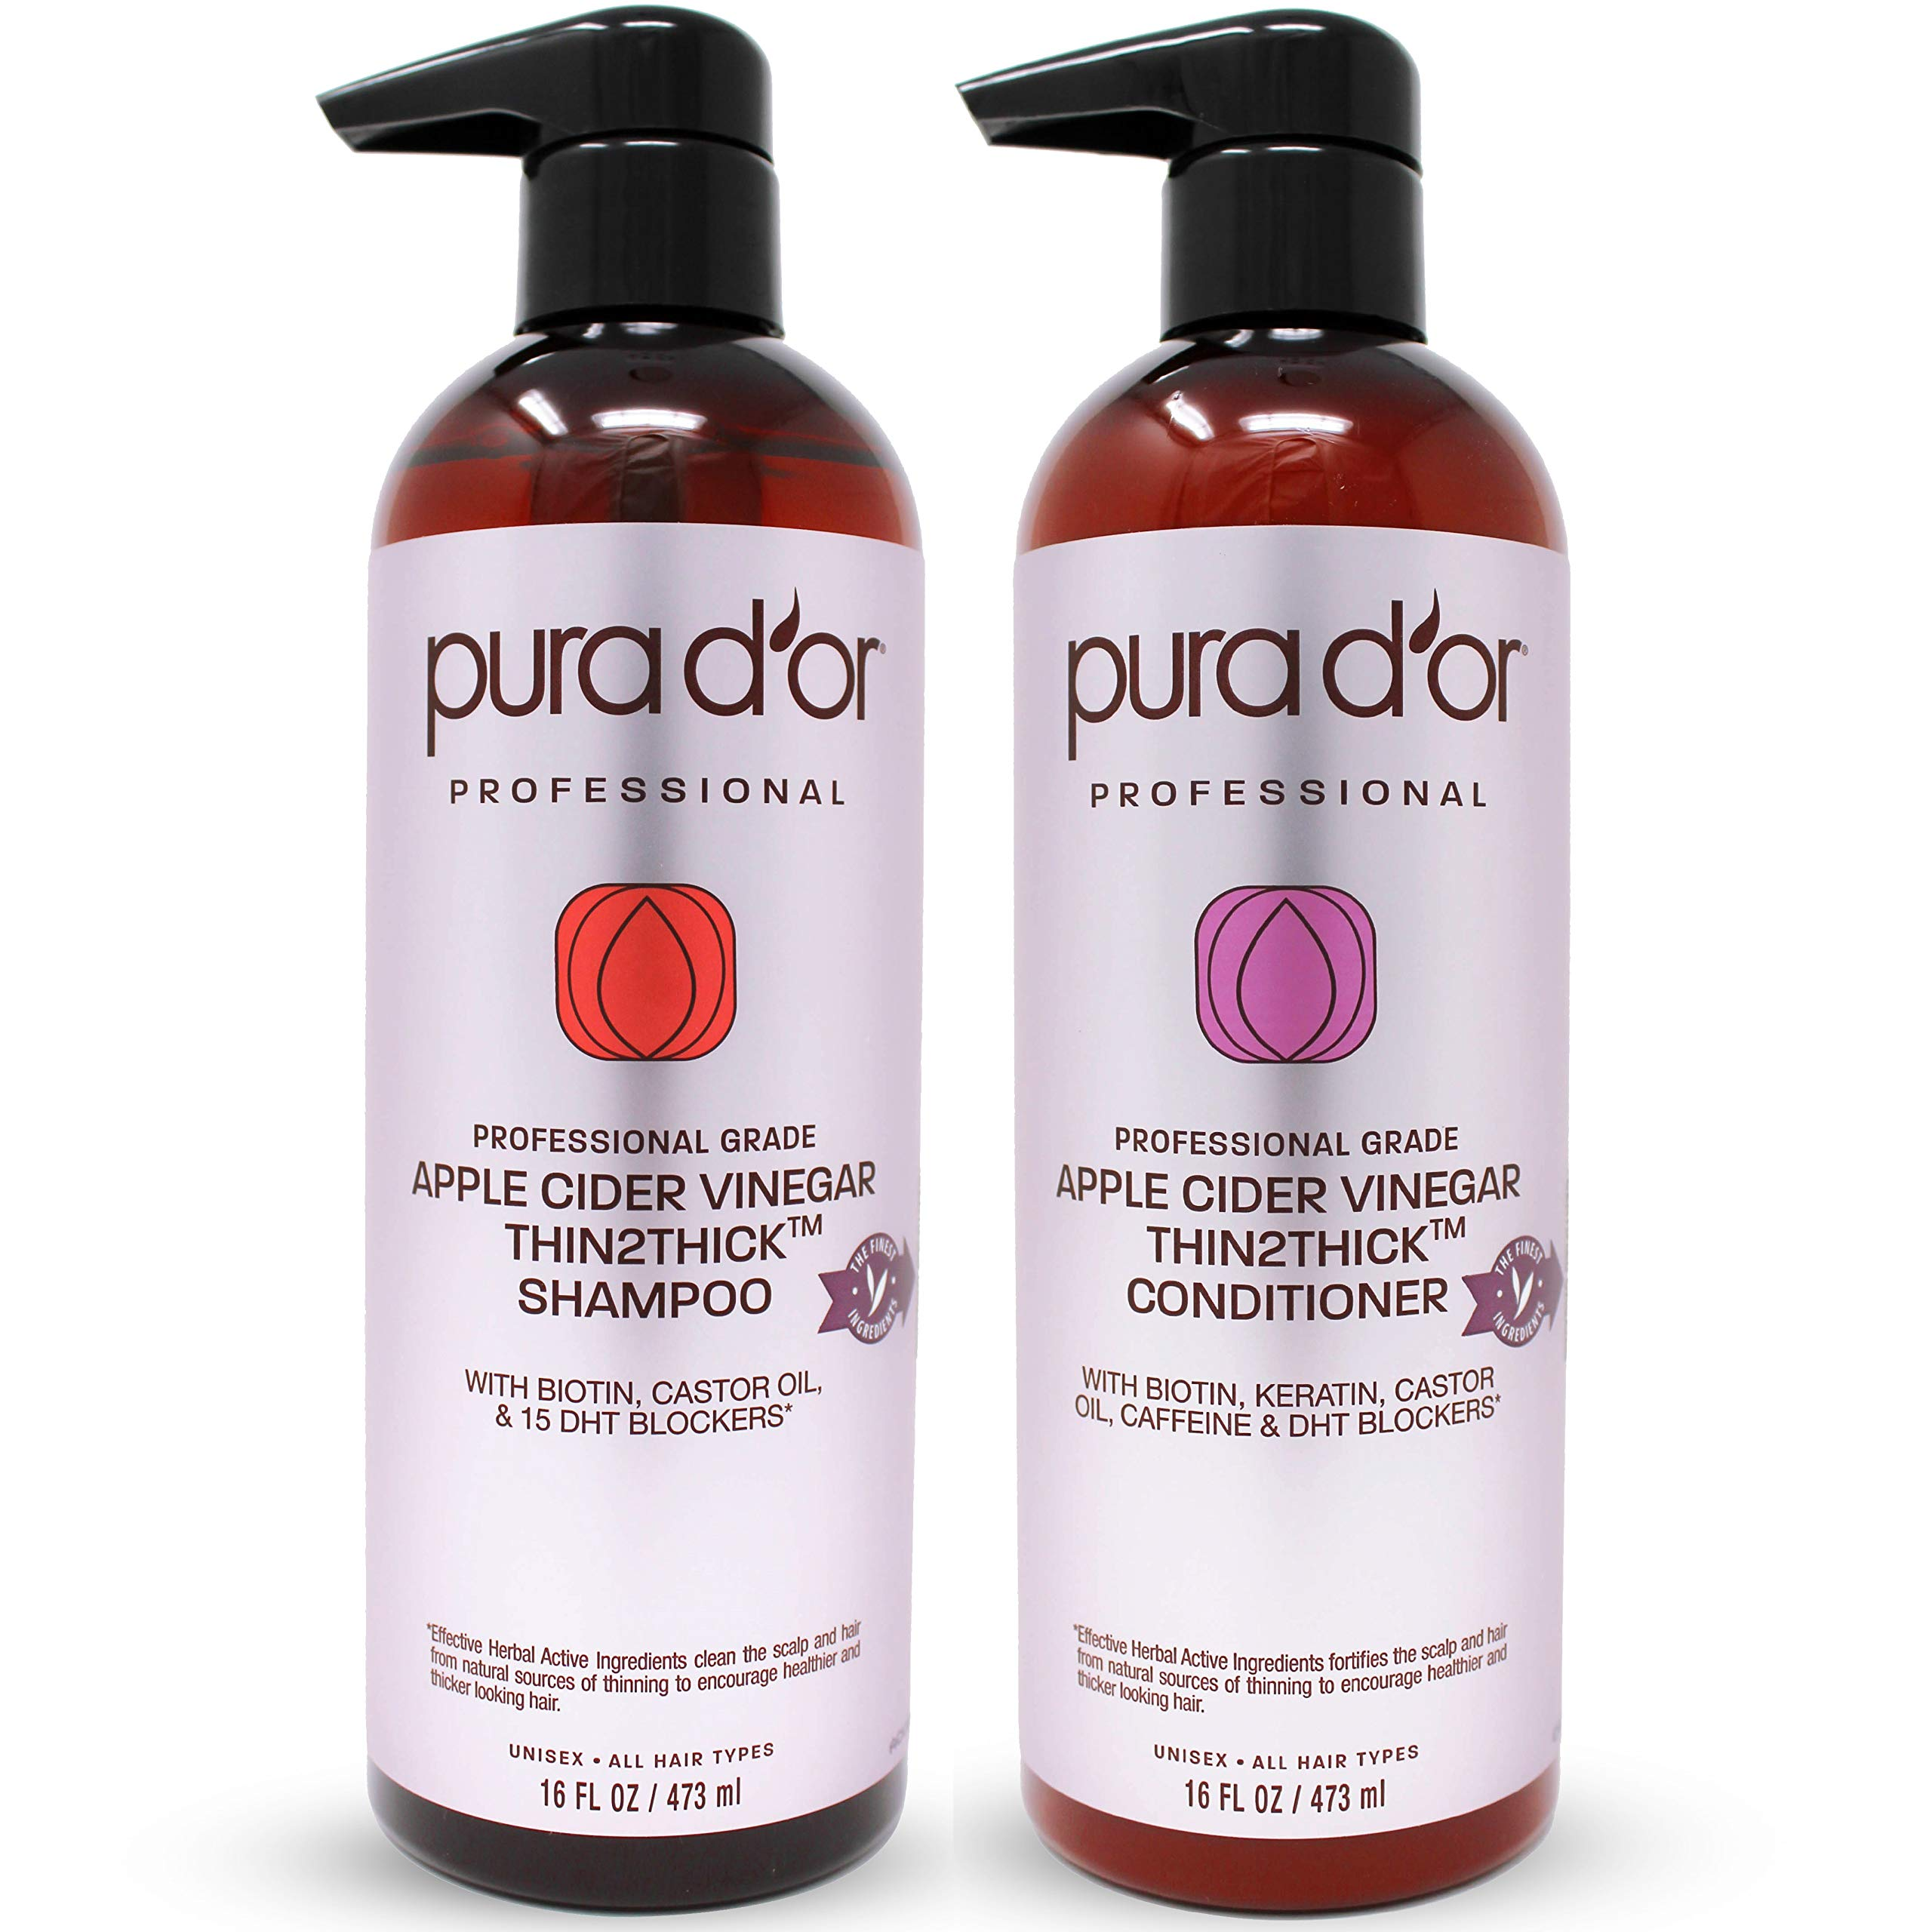 PURA D'OR Professional Grade Apple Cider Vinegar Thin2Thick Shampoo & Conditioner Set - Biotin, Keratin, Caffeine, Castor Oil - Sulfate Free, Natural Ingredients - All Hair Types, Men & Women by PURA D'OR